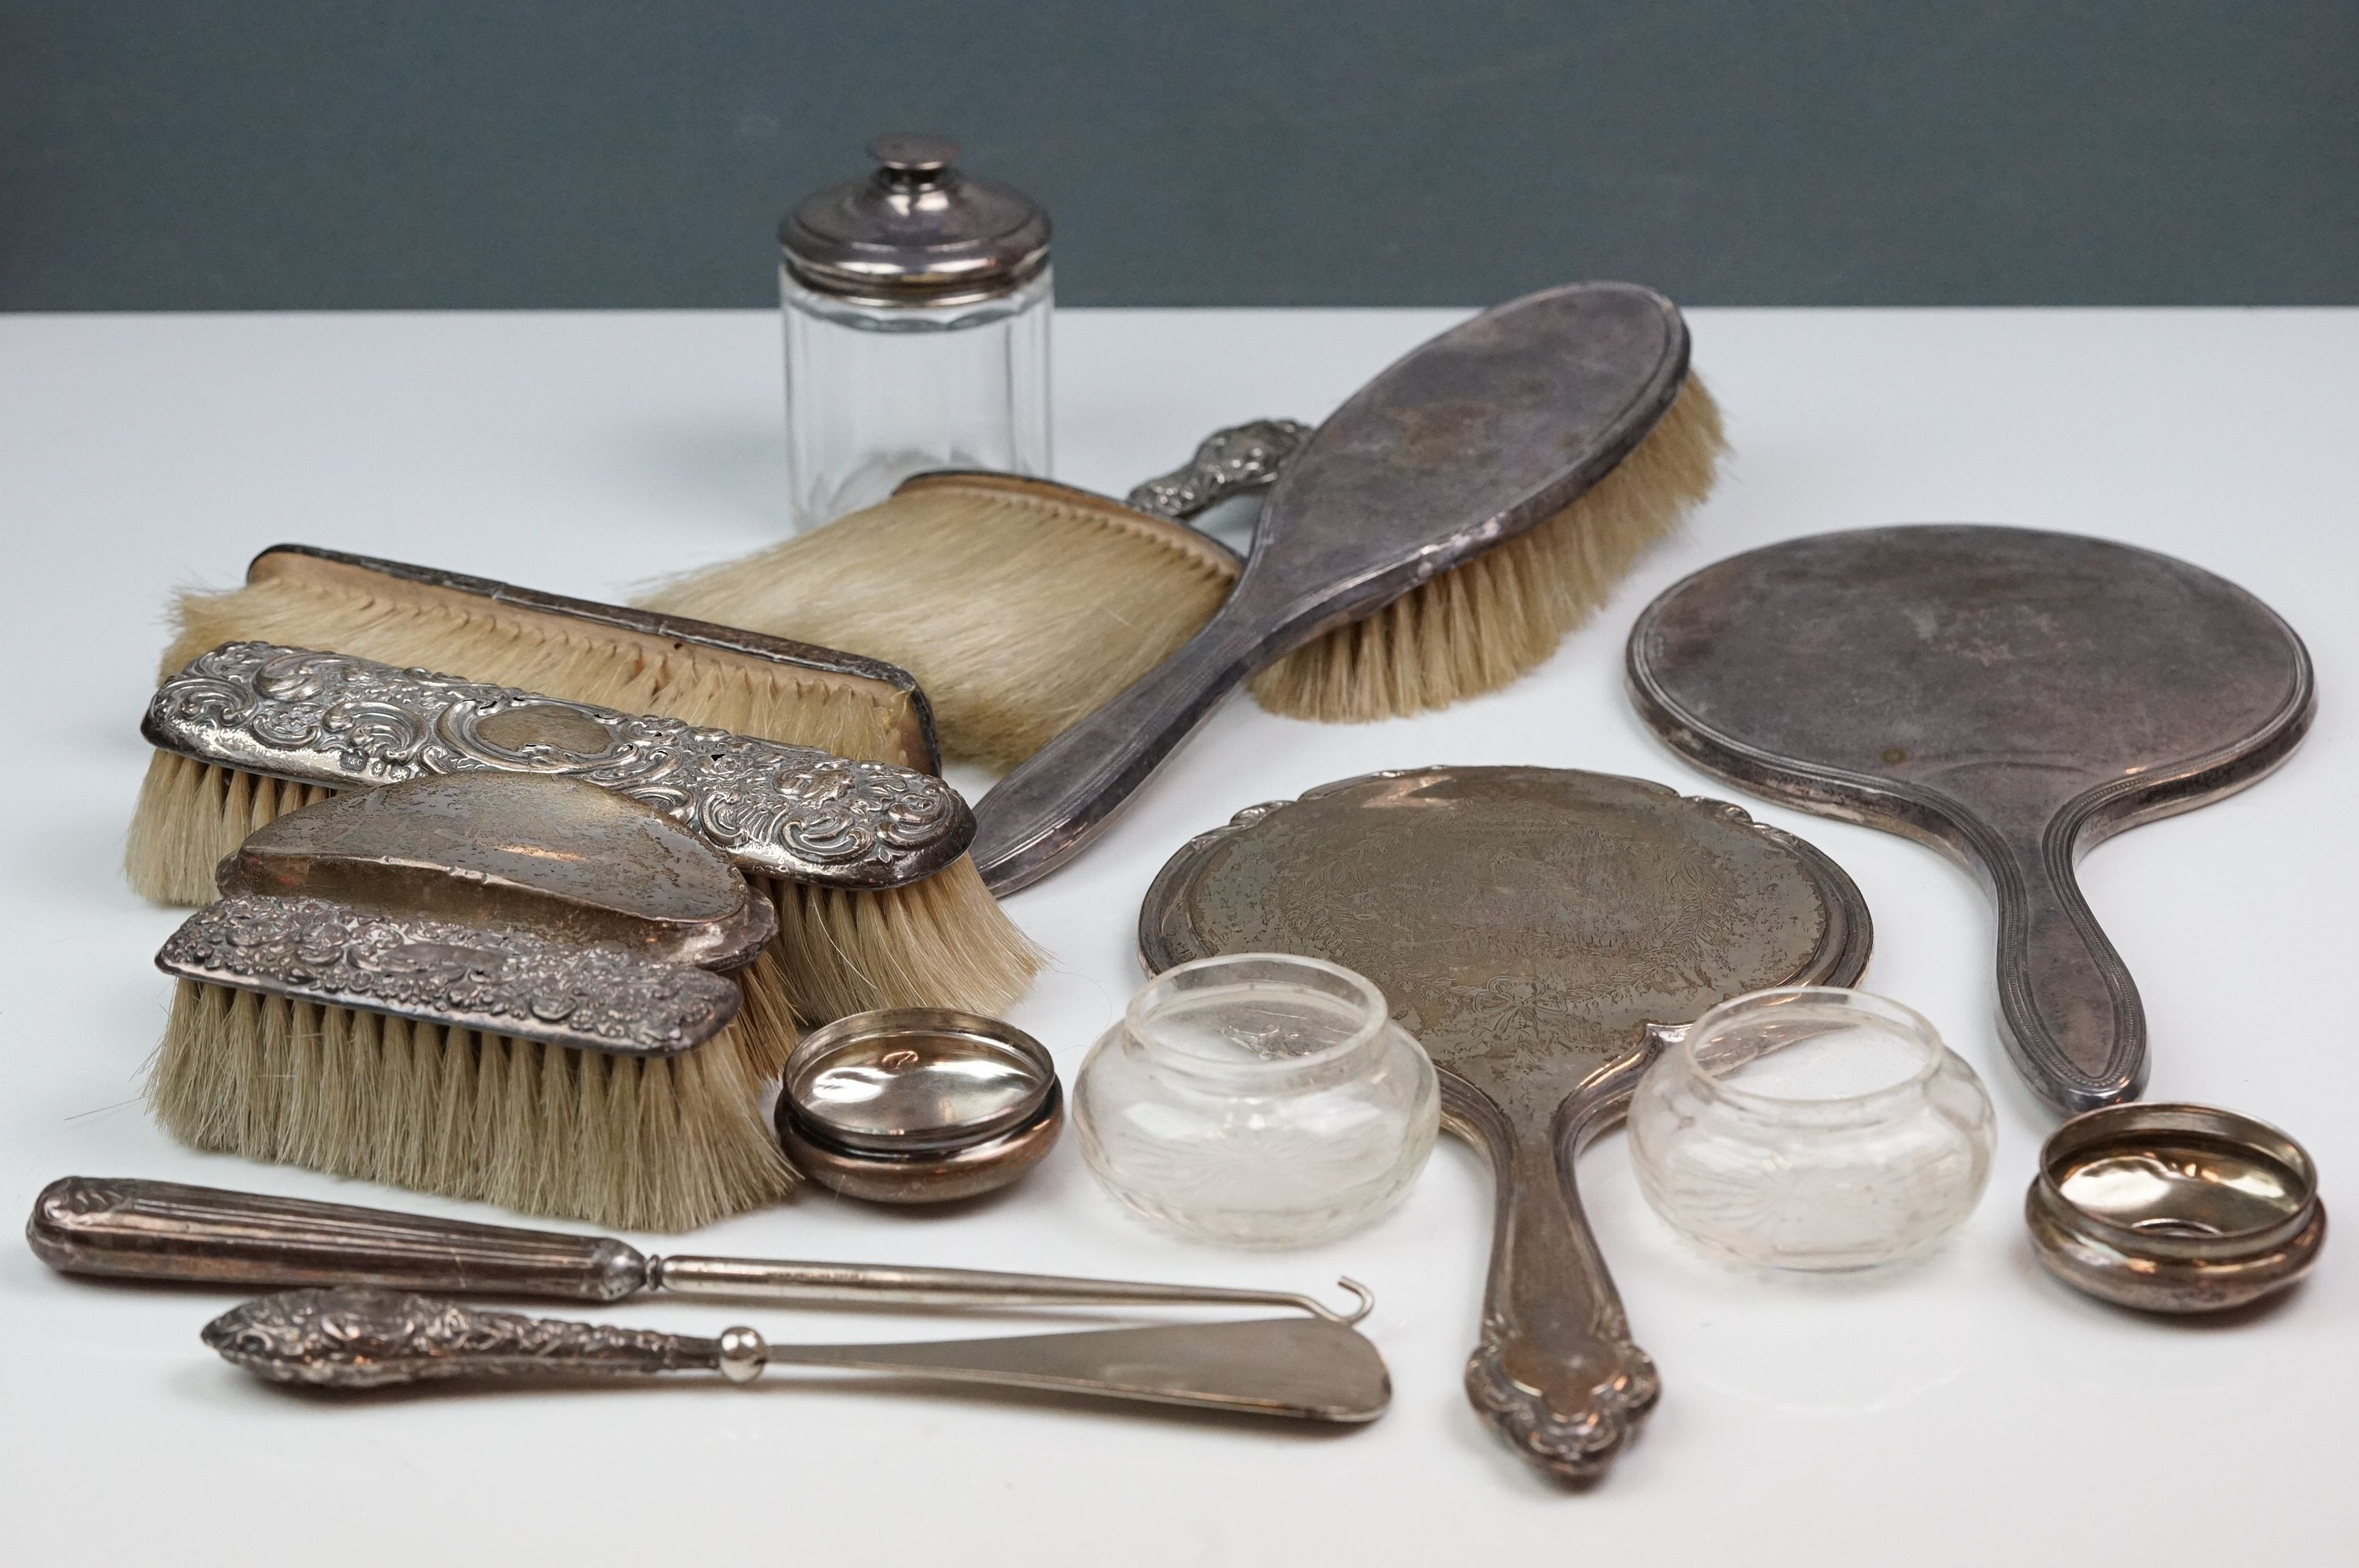 Silver topped dressing table items to include hand mirrors, brushes, jars, button hook and shoe